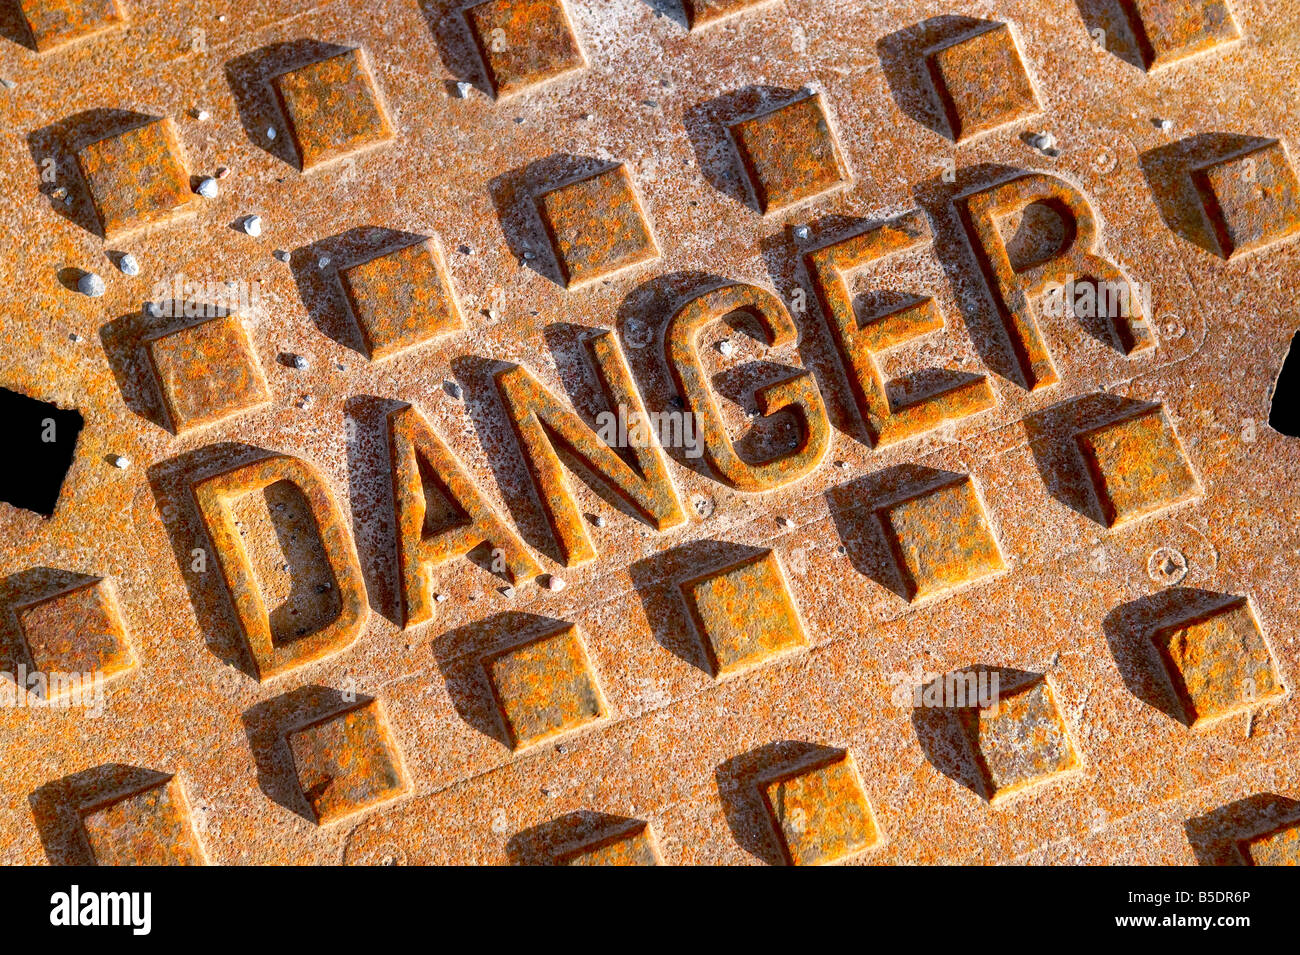 rusted man hole sewer cover reading Danger - Stock Image